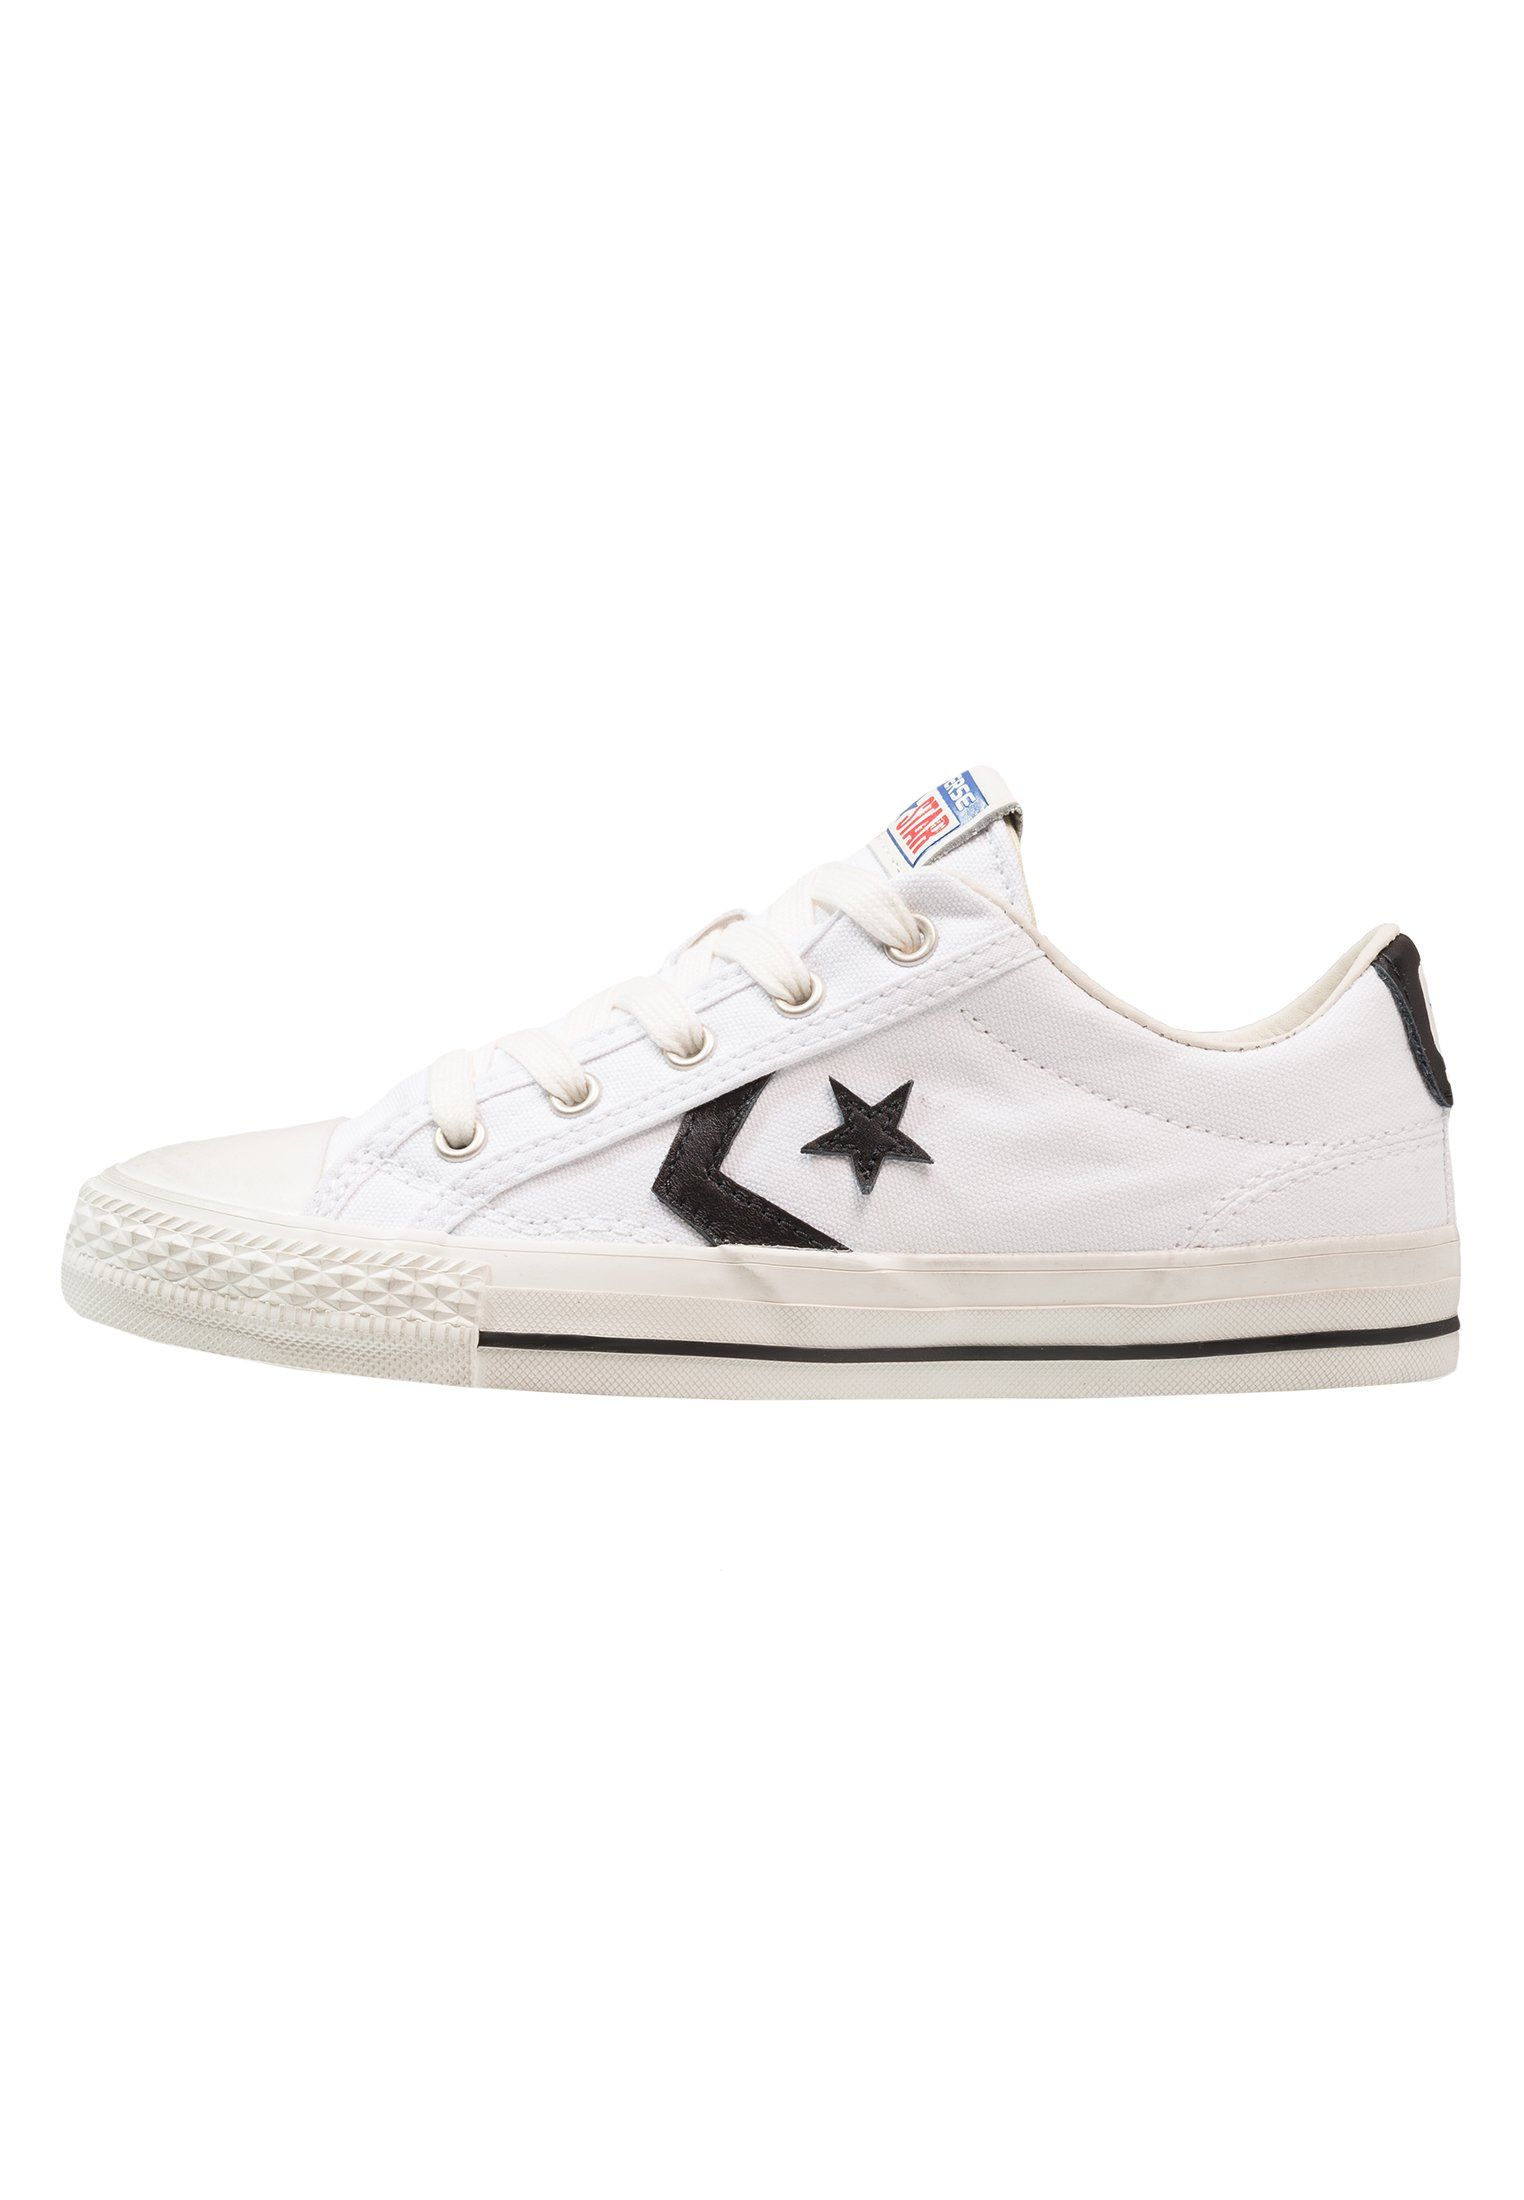 converse star player heritage hombre